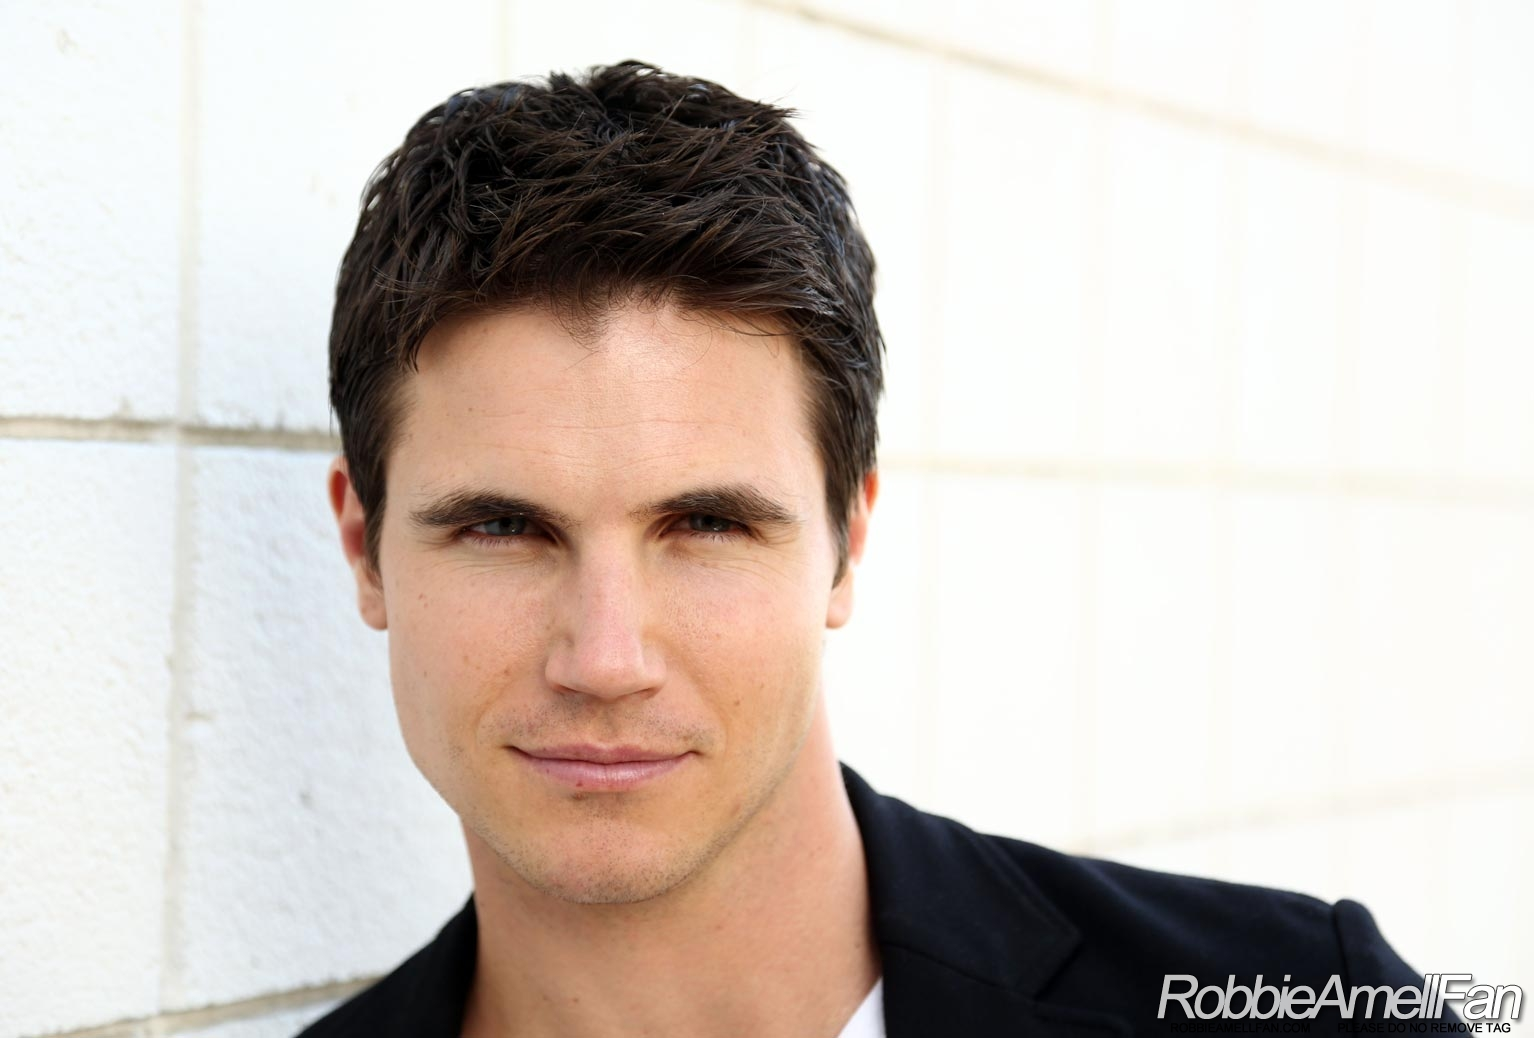 Image - Robbie Amell 0...